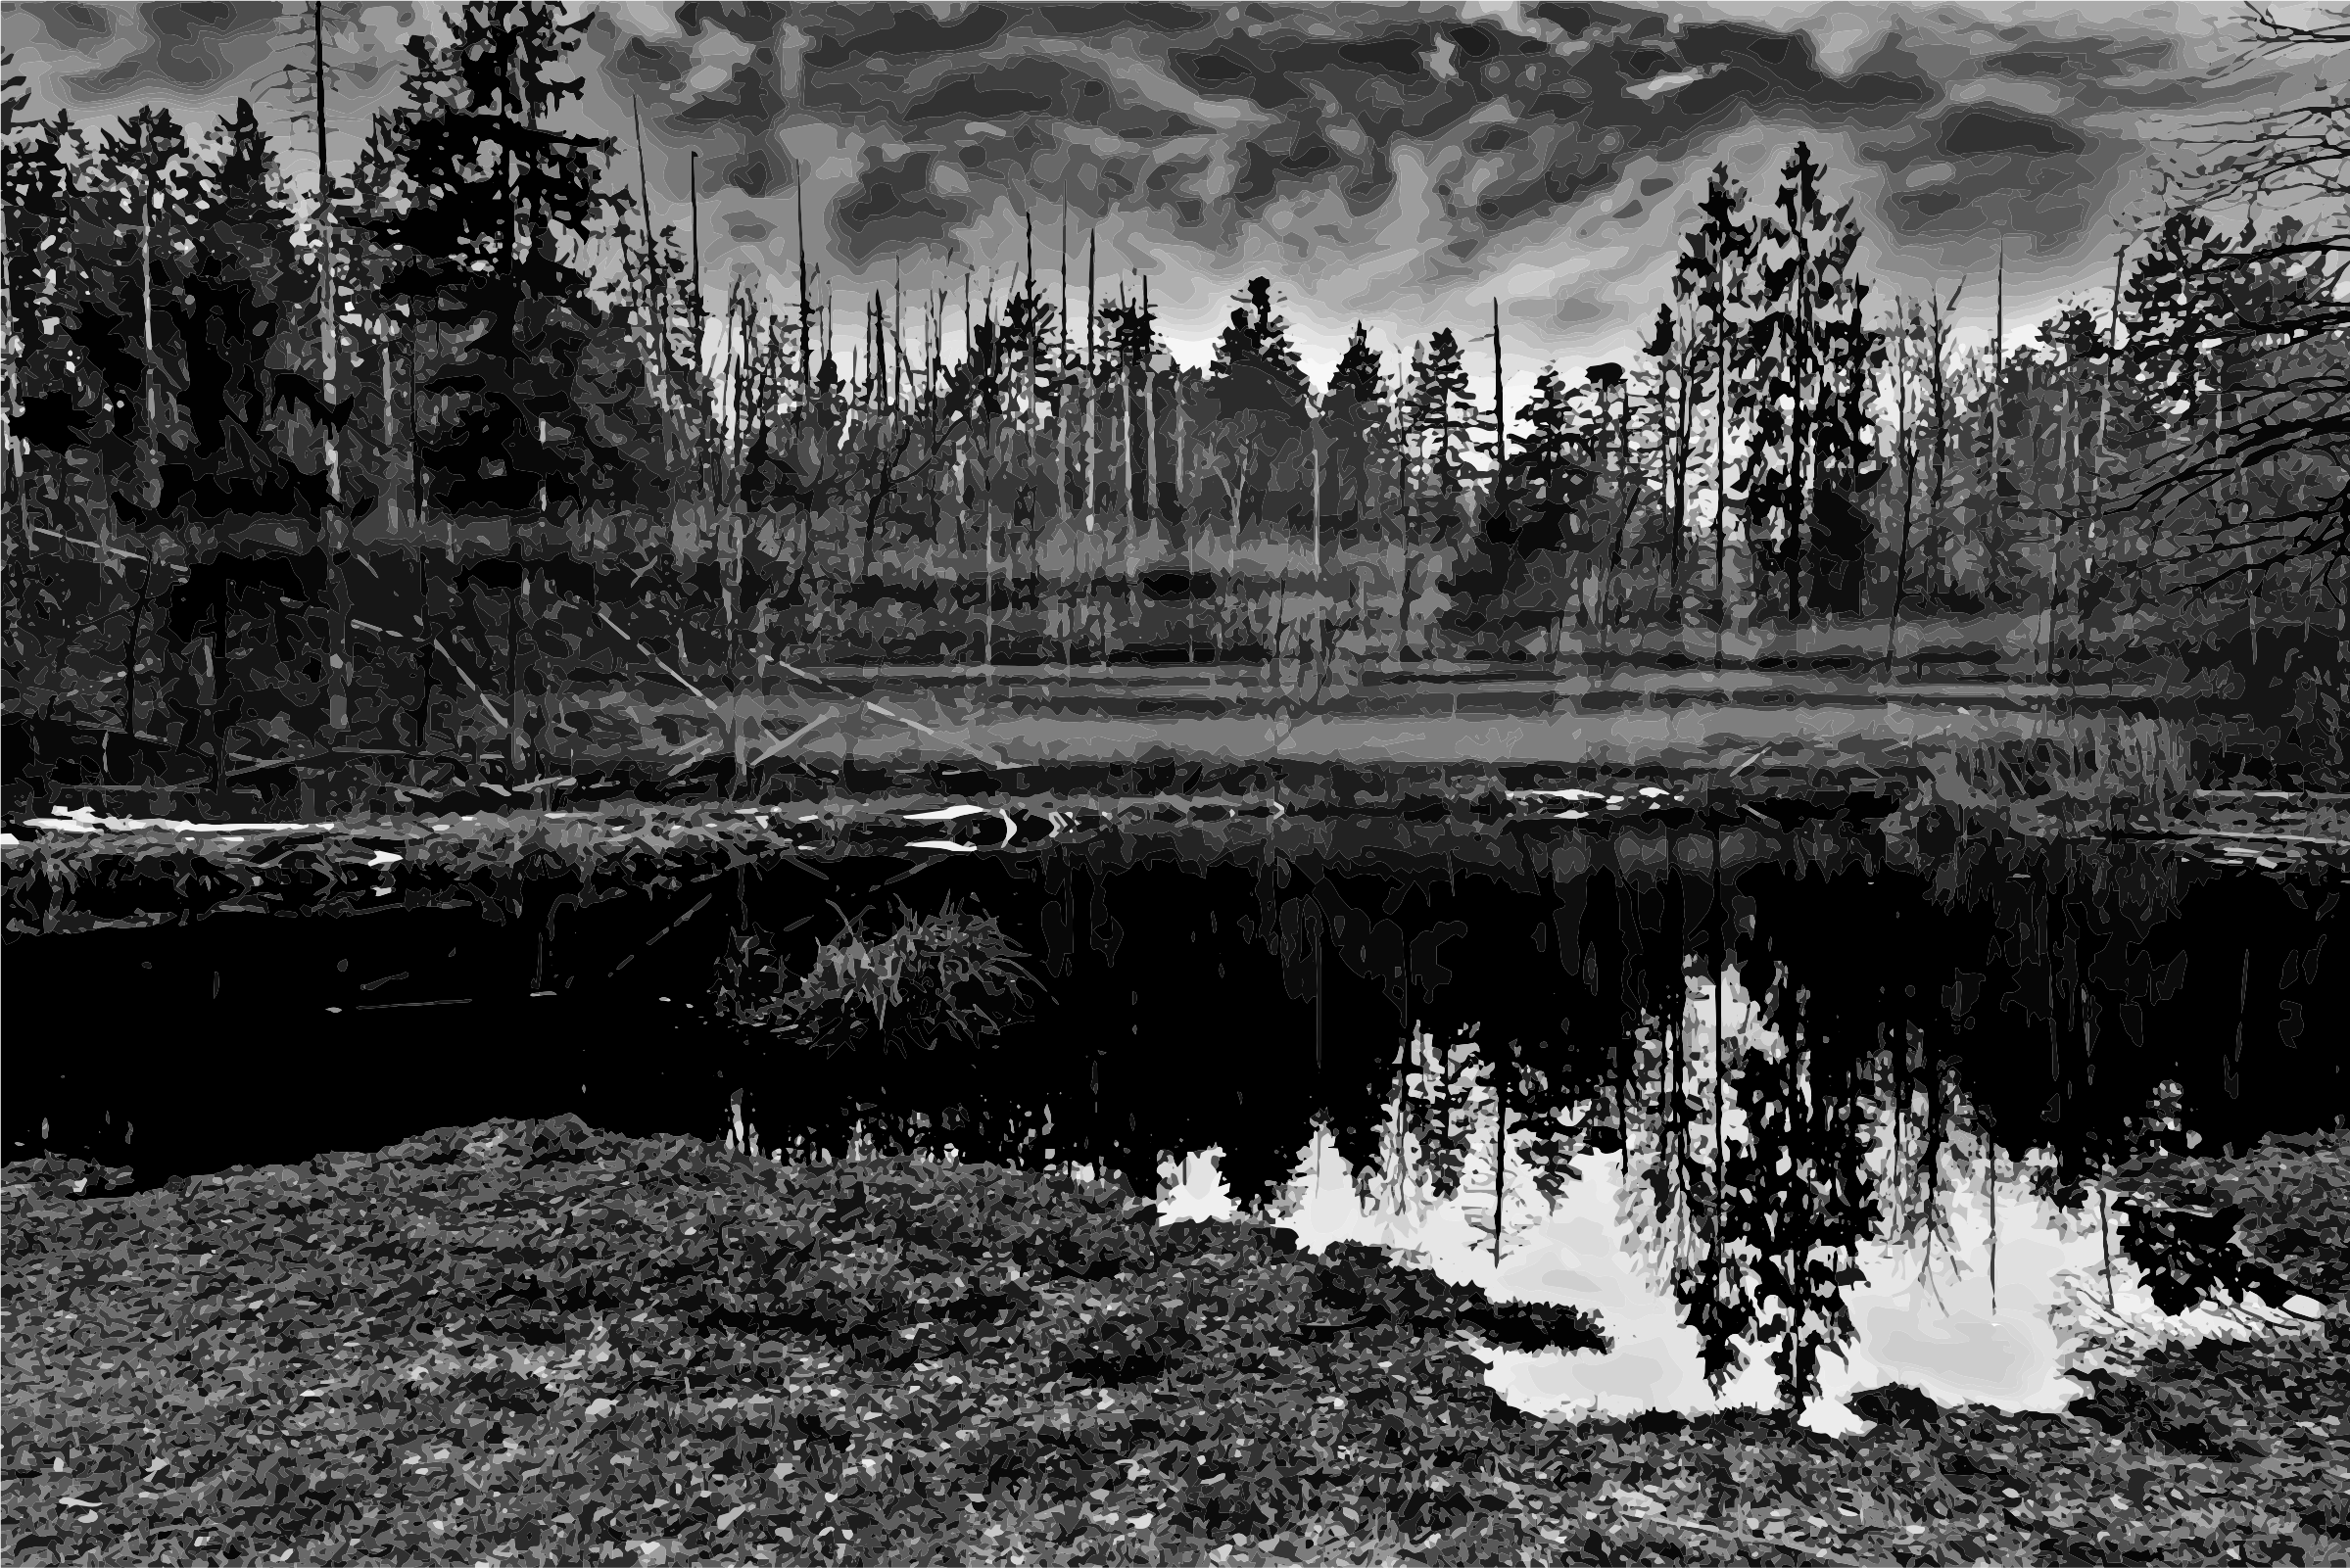 Wet clipart damp. Swamp grayscale big image